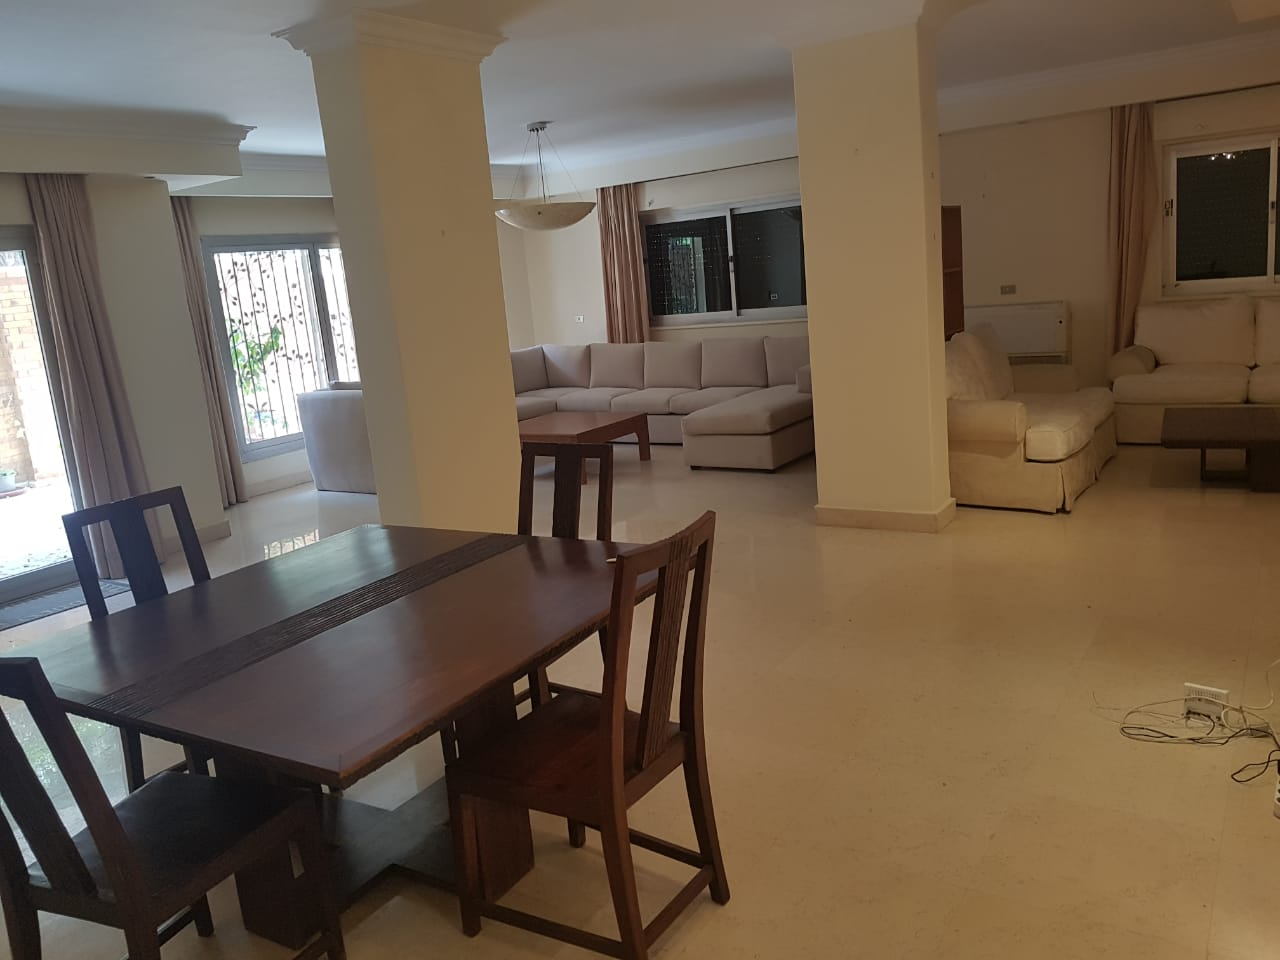 Ground Floors For Rent In Maadi Maadi Sarayat -#3